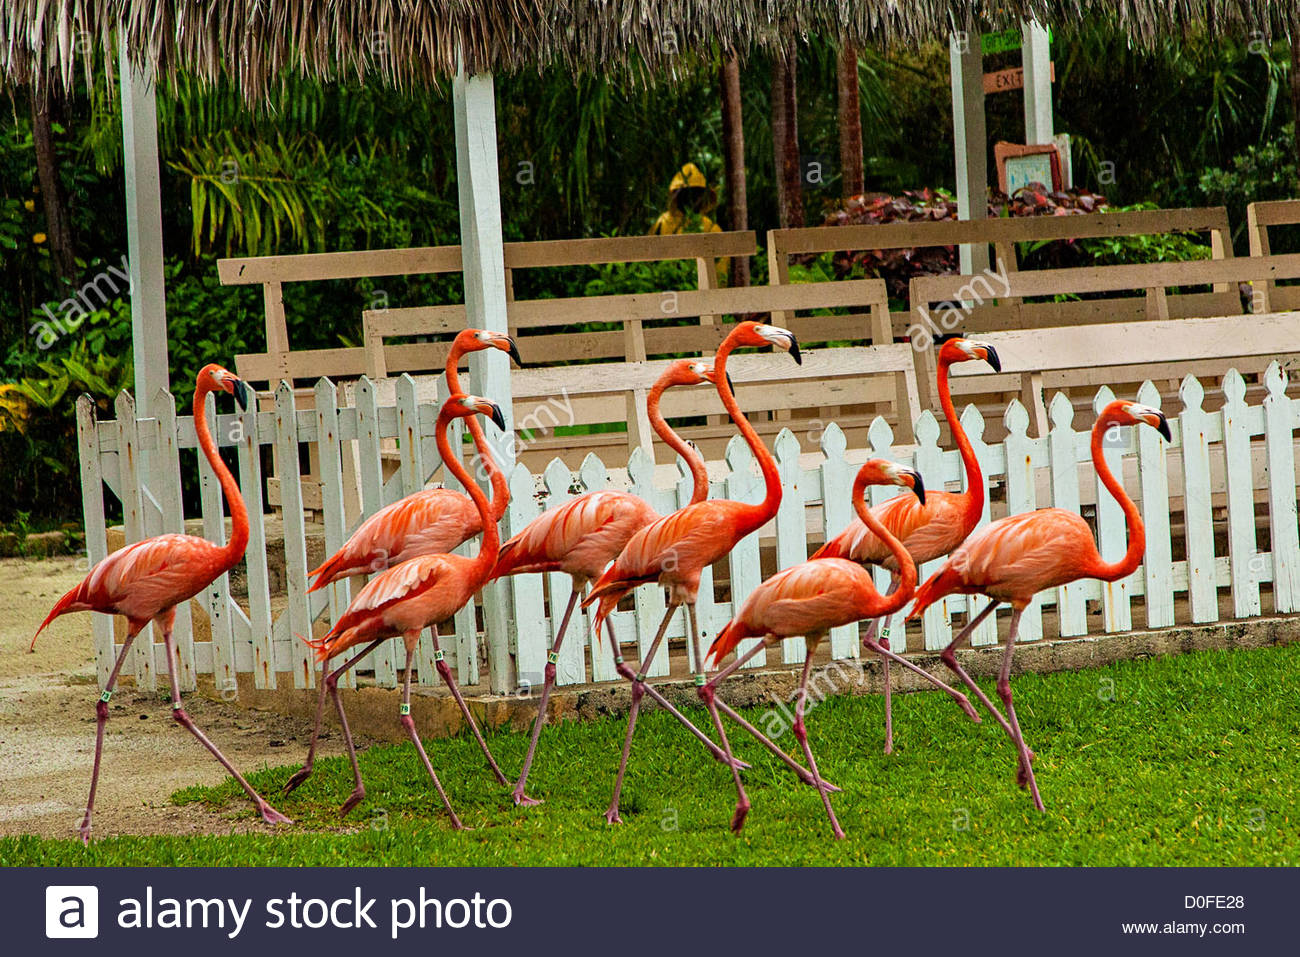 Ardastra Gardens, Zoo & Conservation Center Nassau, Caribbean flamingos perform their daily march at the Ardastra ...